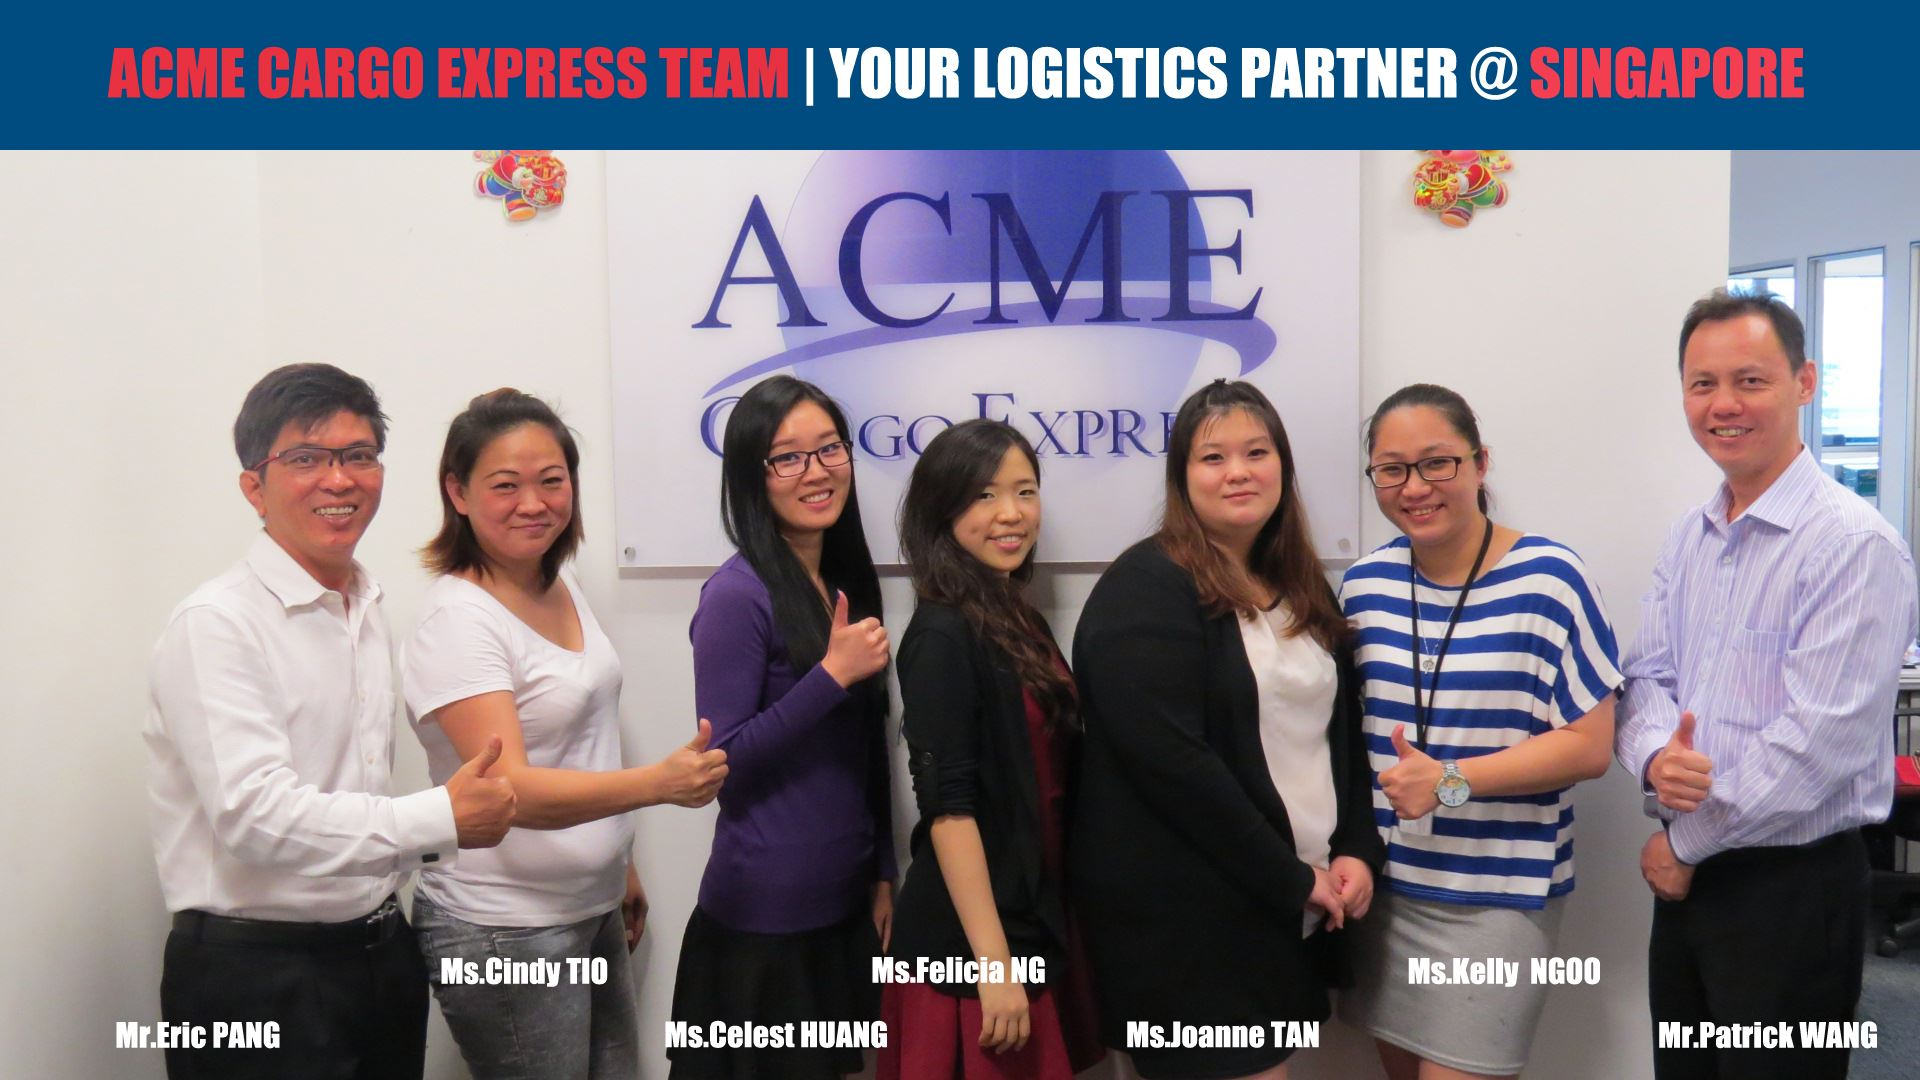 Freight Forwarders Family Worldwide Agents Network - 3F